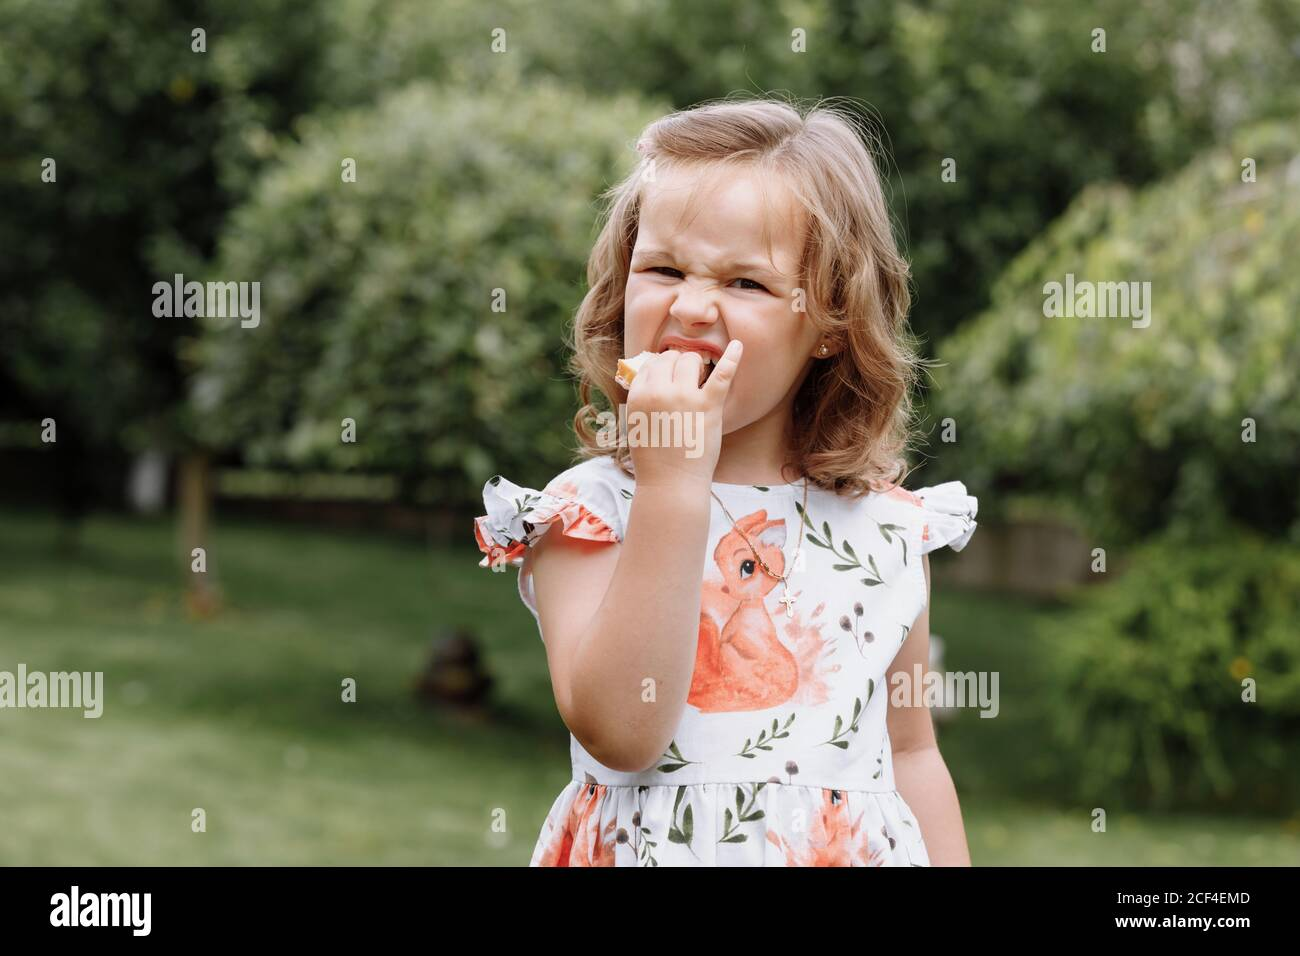 Funny kid girl eating sandwich outdoors. Having fun. Looking at camera. Posing over nature background. Healthy food. Childhood. Stock Photo